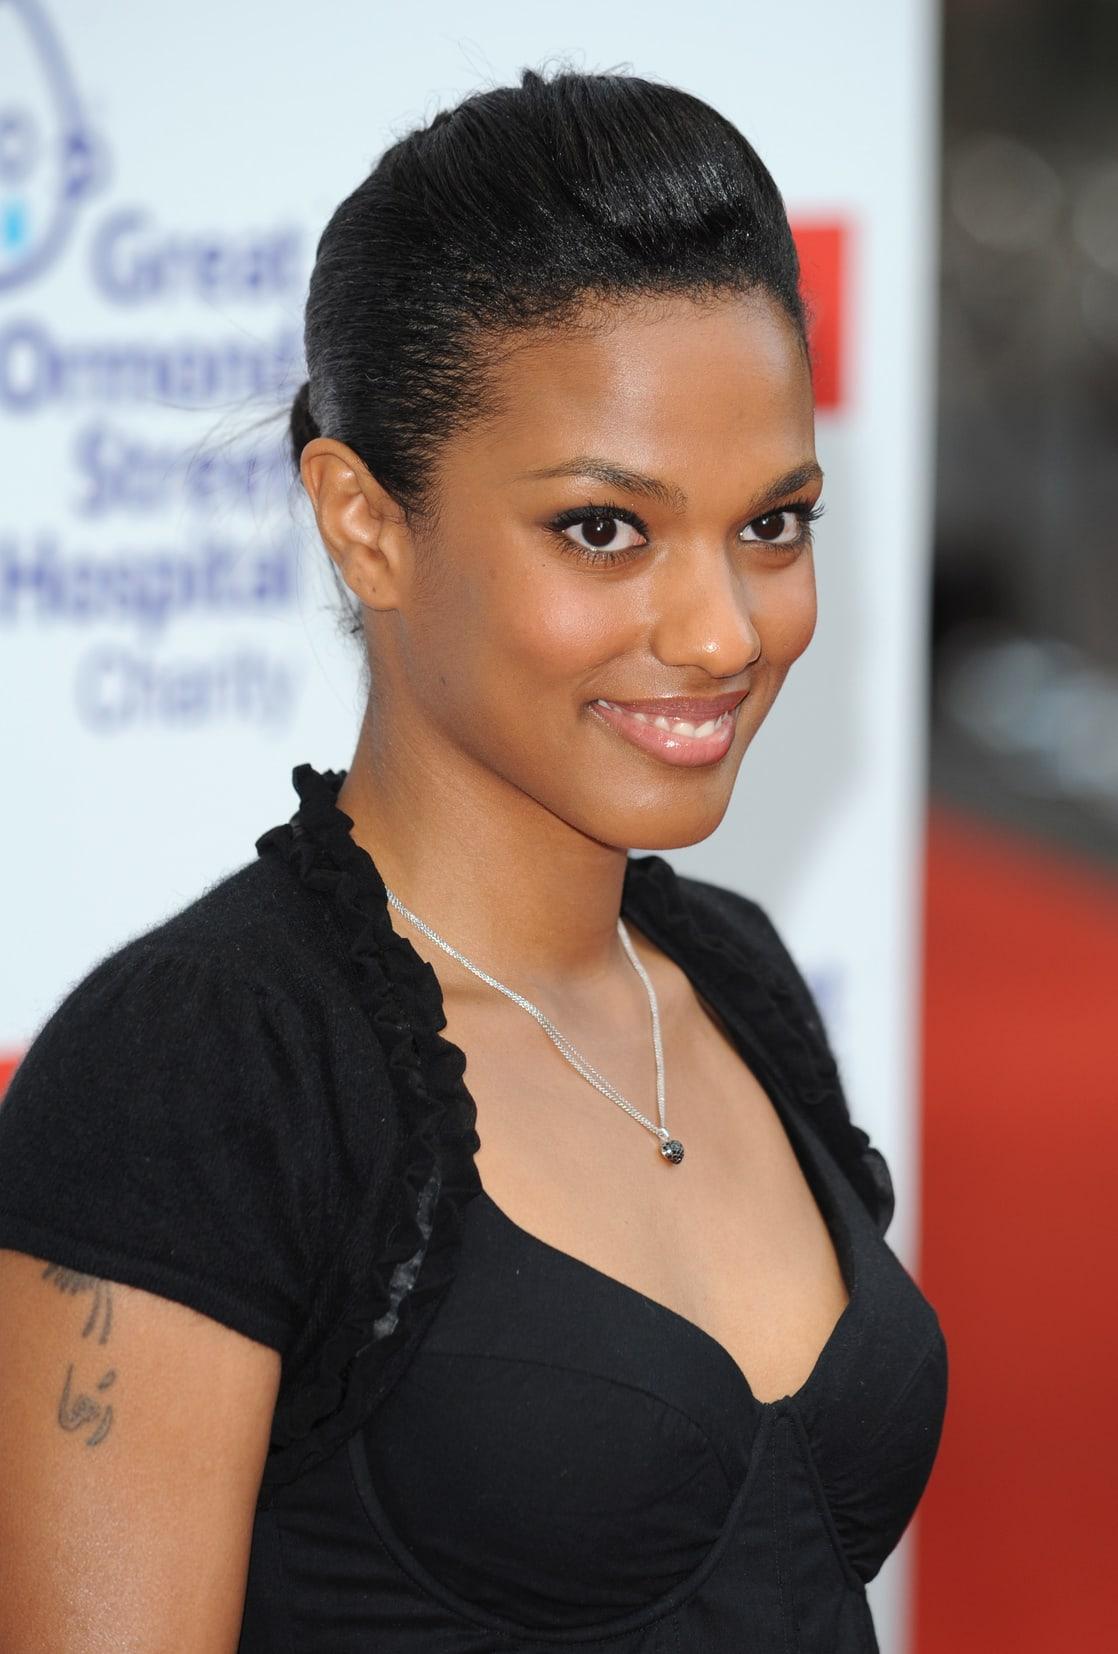 freema agyeman hot smile